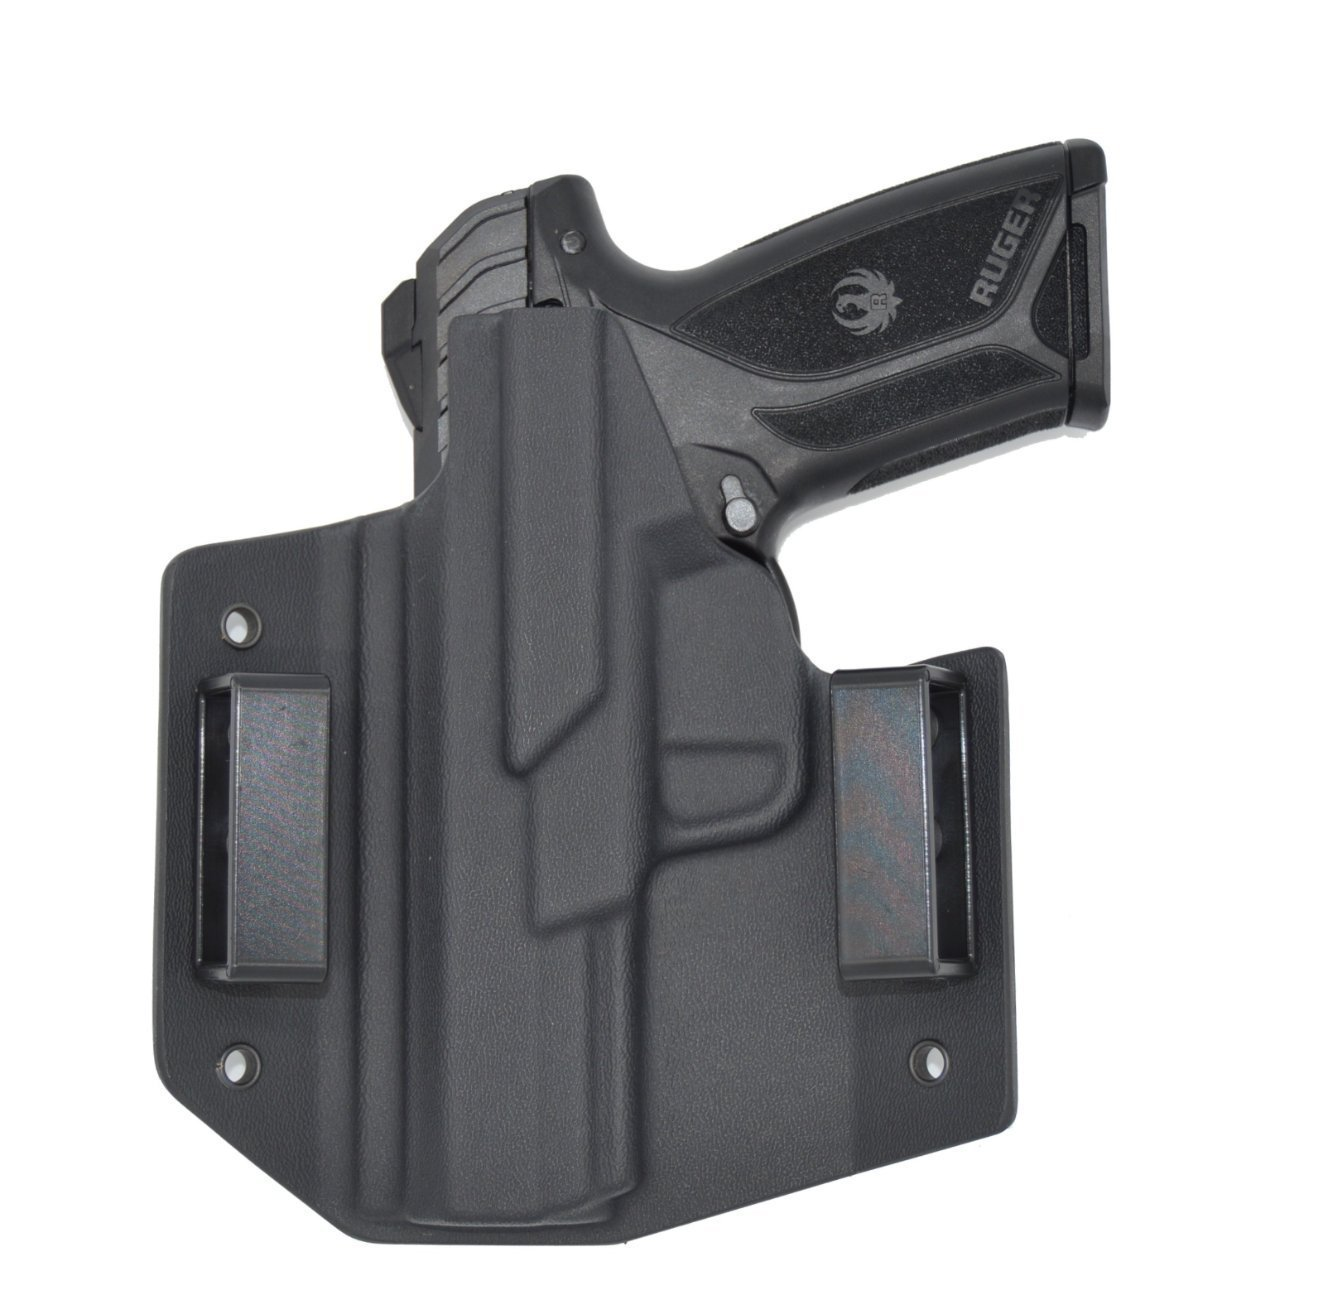 C&G Ruger Security 9 OWB Covert Kydex Holster - Quickship